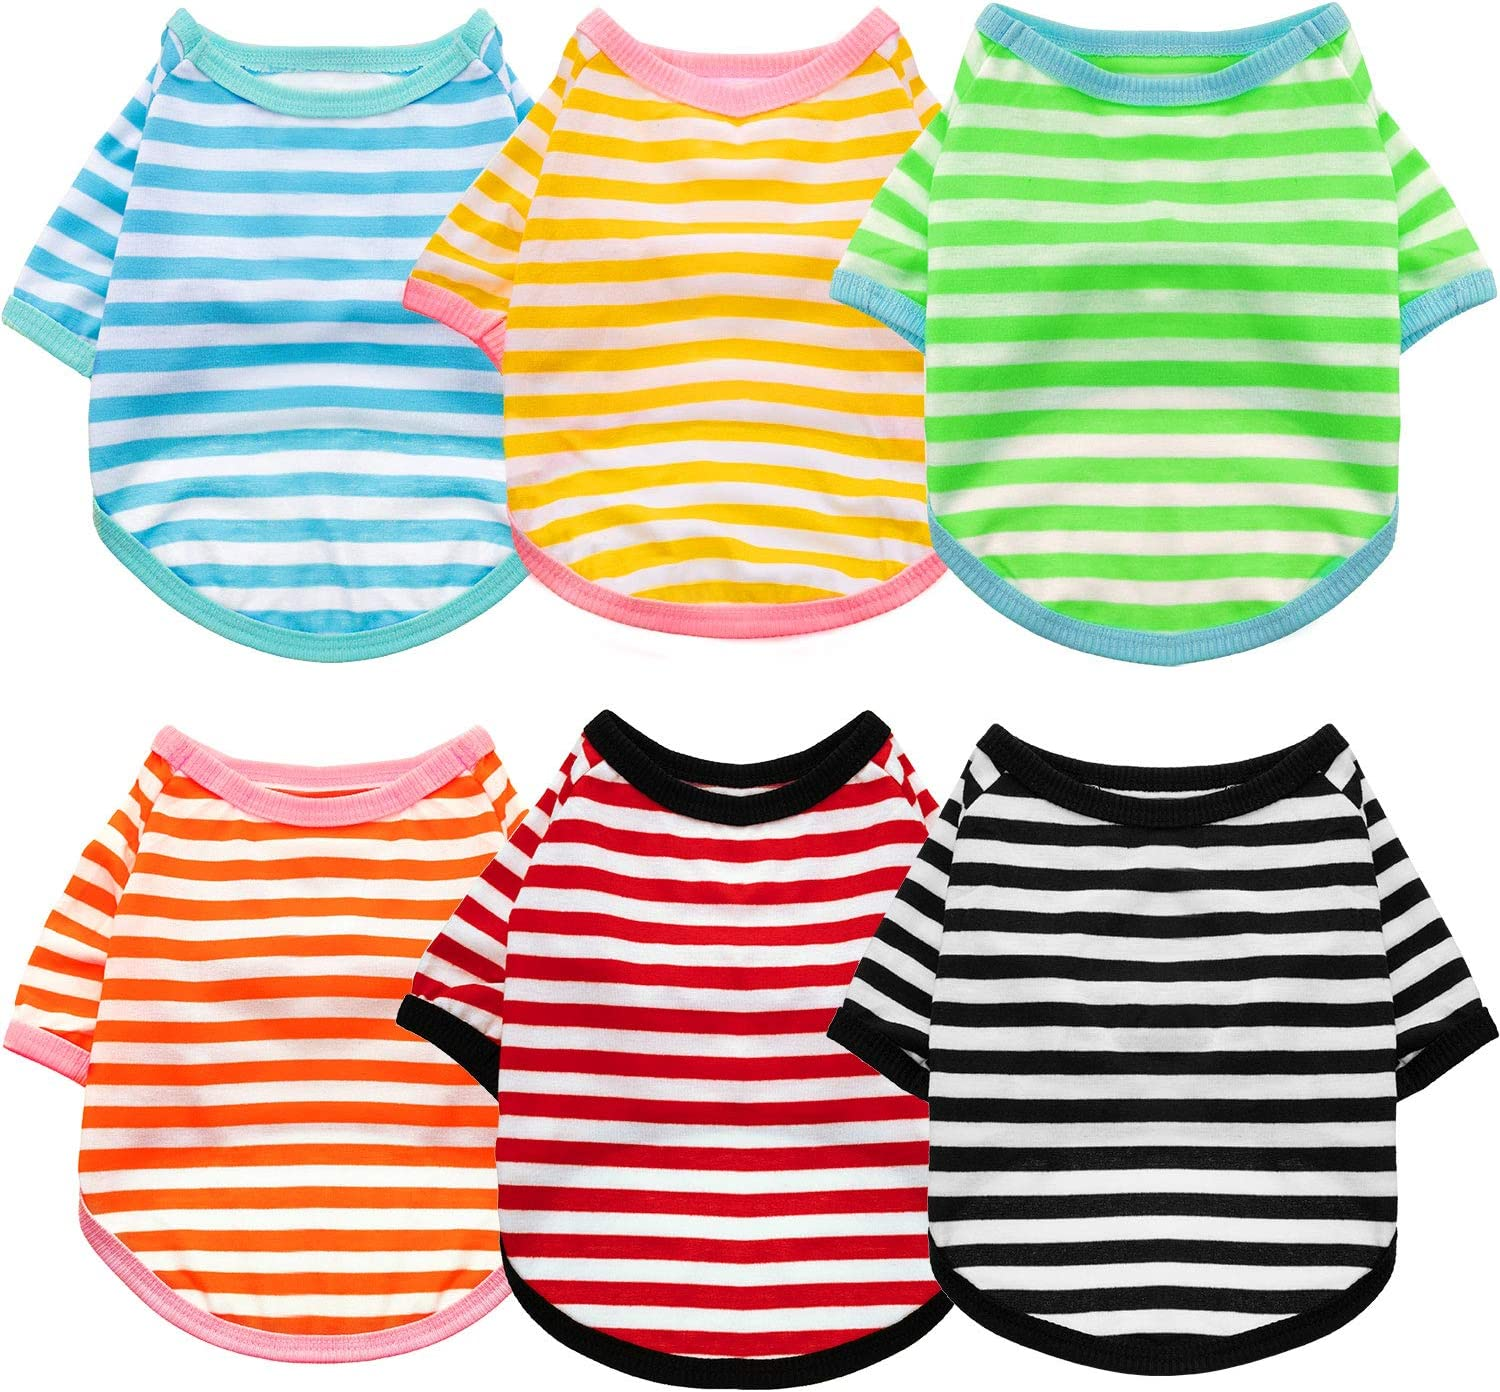 6 Pieces Dog Striped T-Shirt Dog Shirt Breathable Pet Apparel Colorful Puppy Sweatshirt Dog Clothes for Small to Medium Dogs Puppy (M) : Pet Supplies